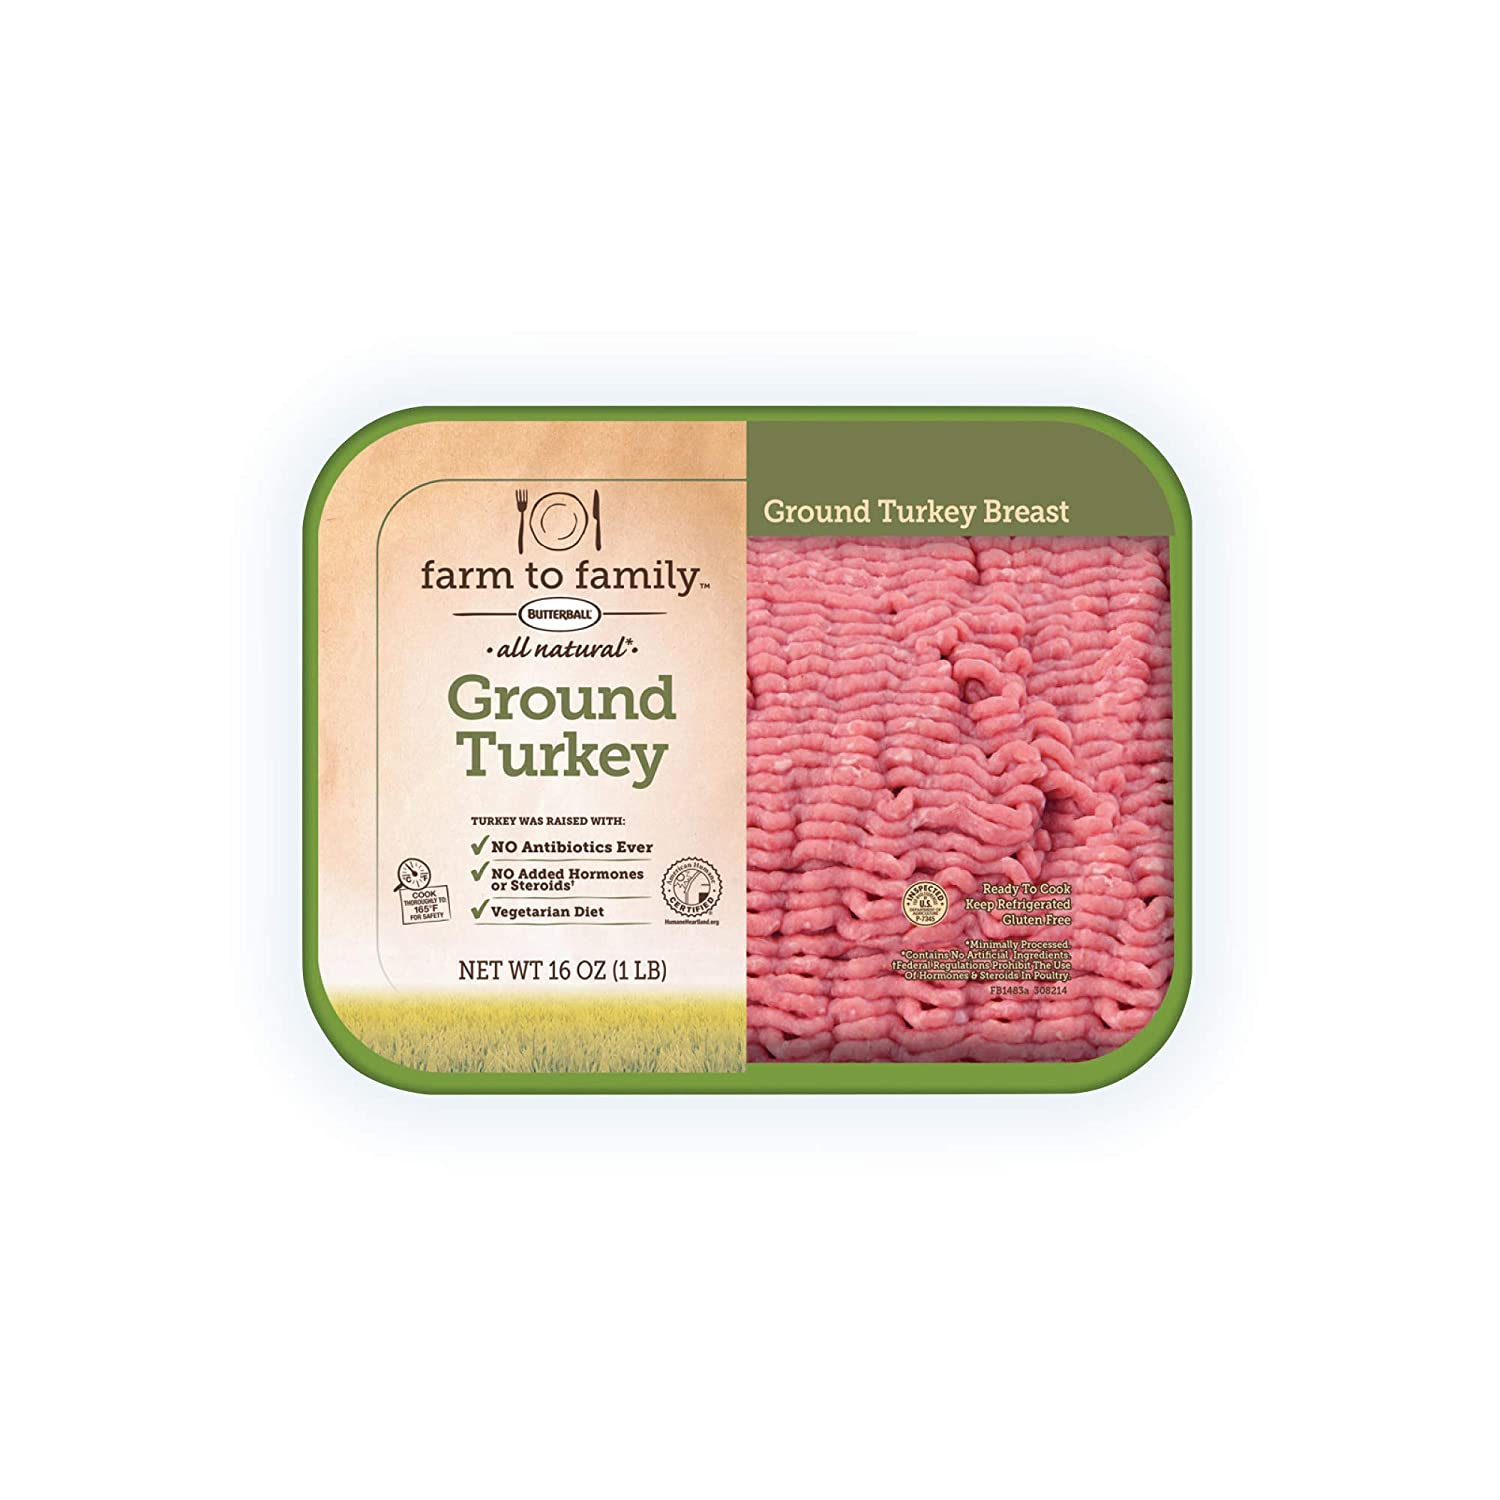 Farm to Family by Butterball Fresh 98% Fat Free Ground Turkey, No Antibiotics Ever, 1 lb.